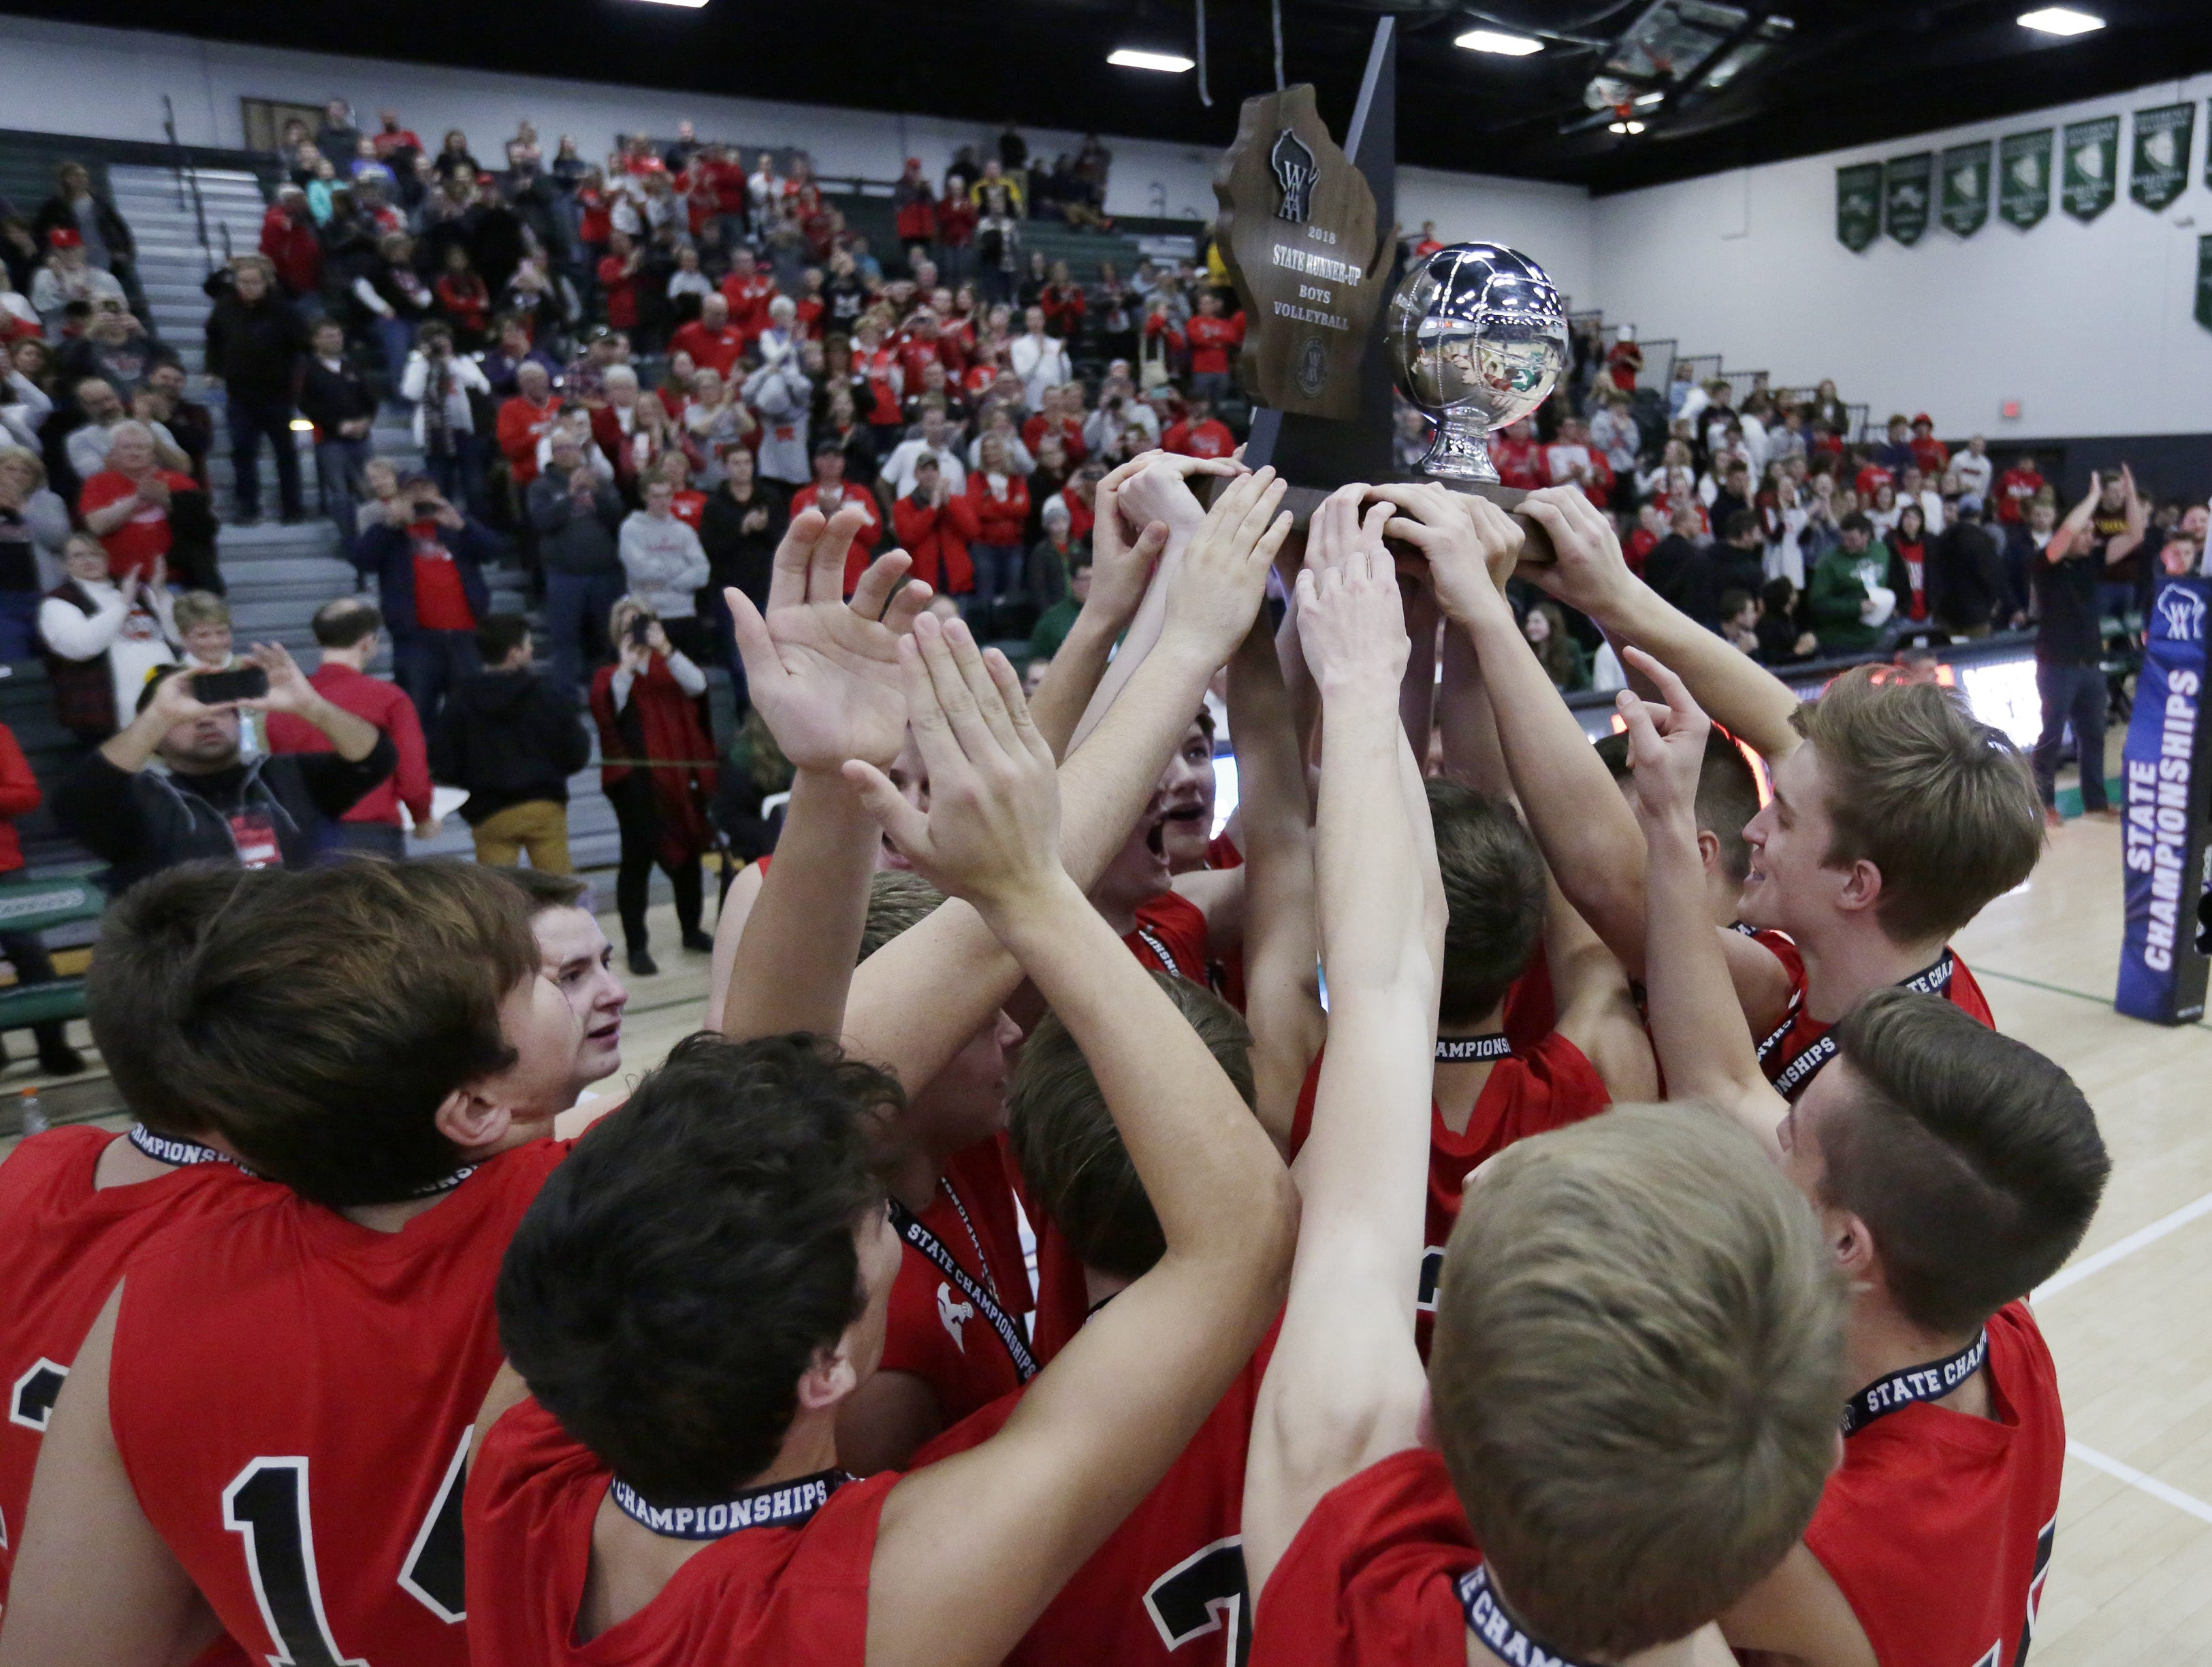 Kimberly lost to Germantown in the championship match three games to one.  Kimberly Papermakers played Germantown Warhawks in Division 1 WIAA State Boys Volleyball Championship, Saturday, November 10, 2018 at Wisconsin Lutheran College in Milwaukee, Wis.   Joe Sienkiewicz/USA Today NETWORK-Wisconsin